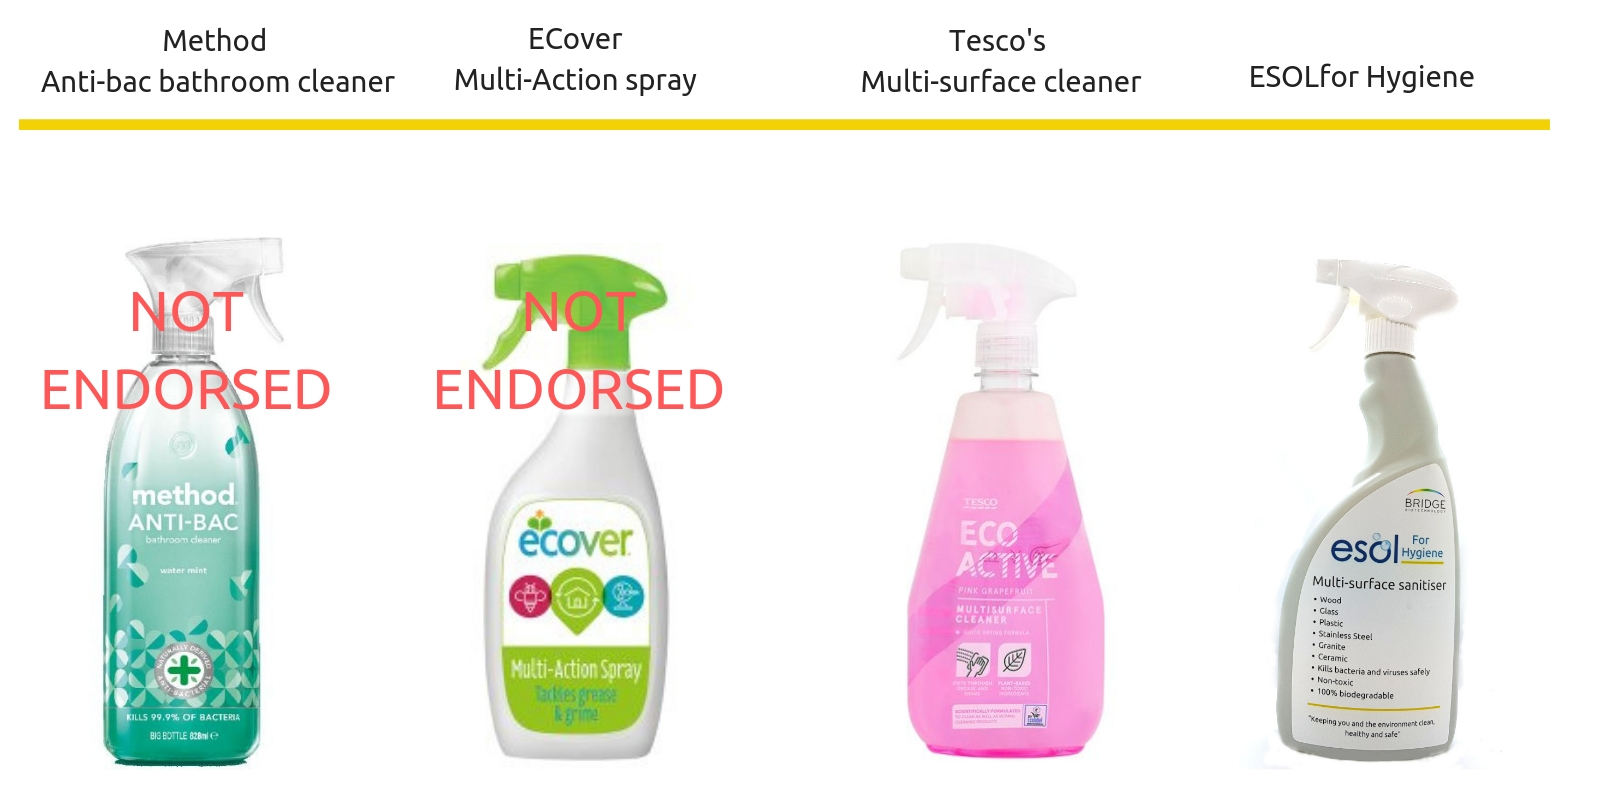 Method vs ECover vs Tescos vs ESOL for Hygiene